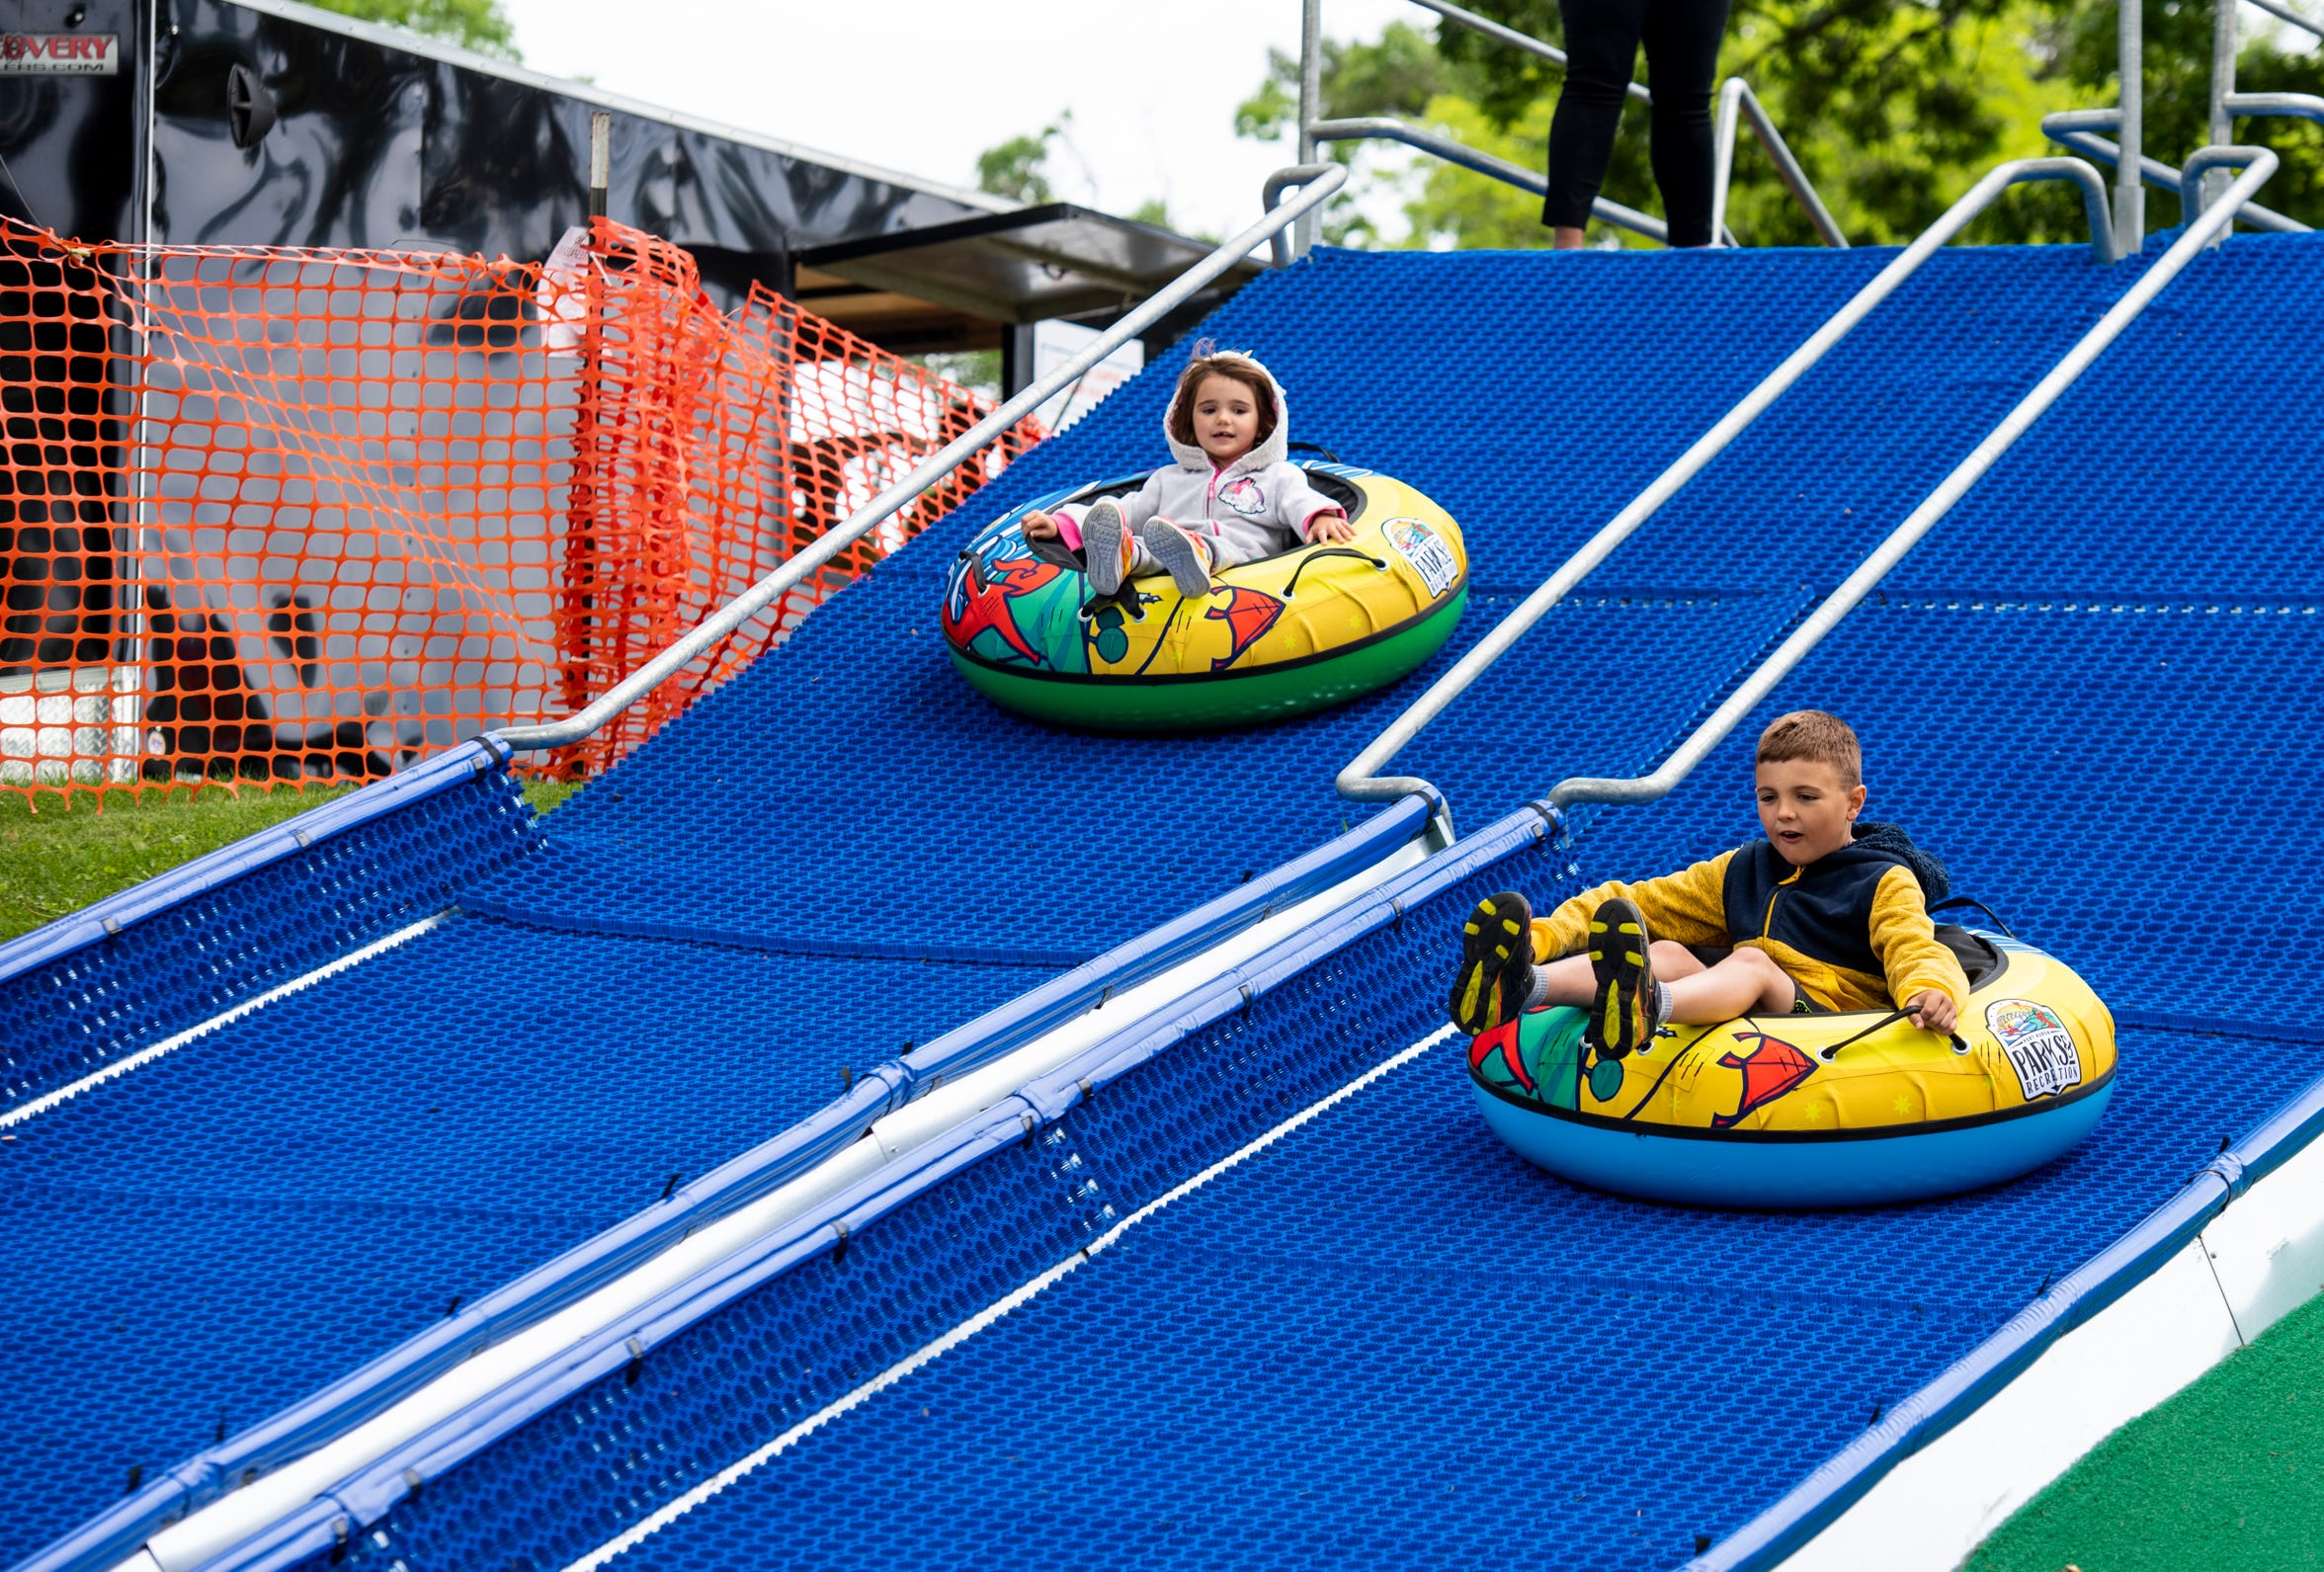 Charlie Lutrell, 7, and his sister Ava, 4, ride innertubes down the Super Slide at Palmer Park Monday, June 17, 2019.  The slides are free to use for anyone 4 and older.